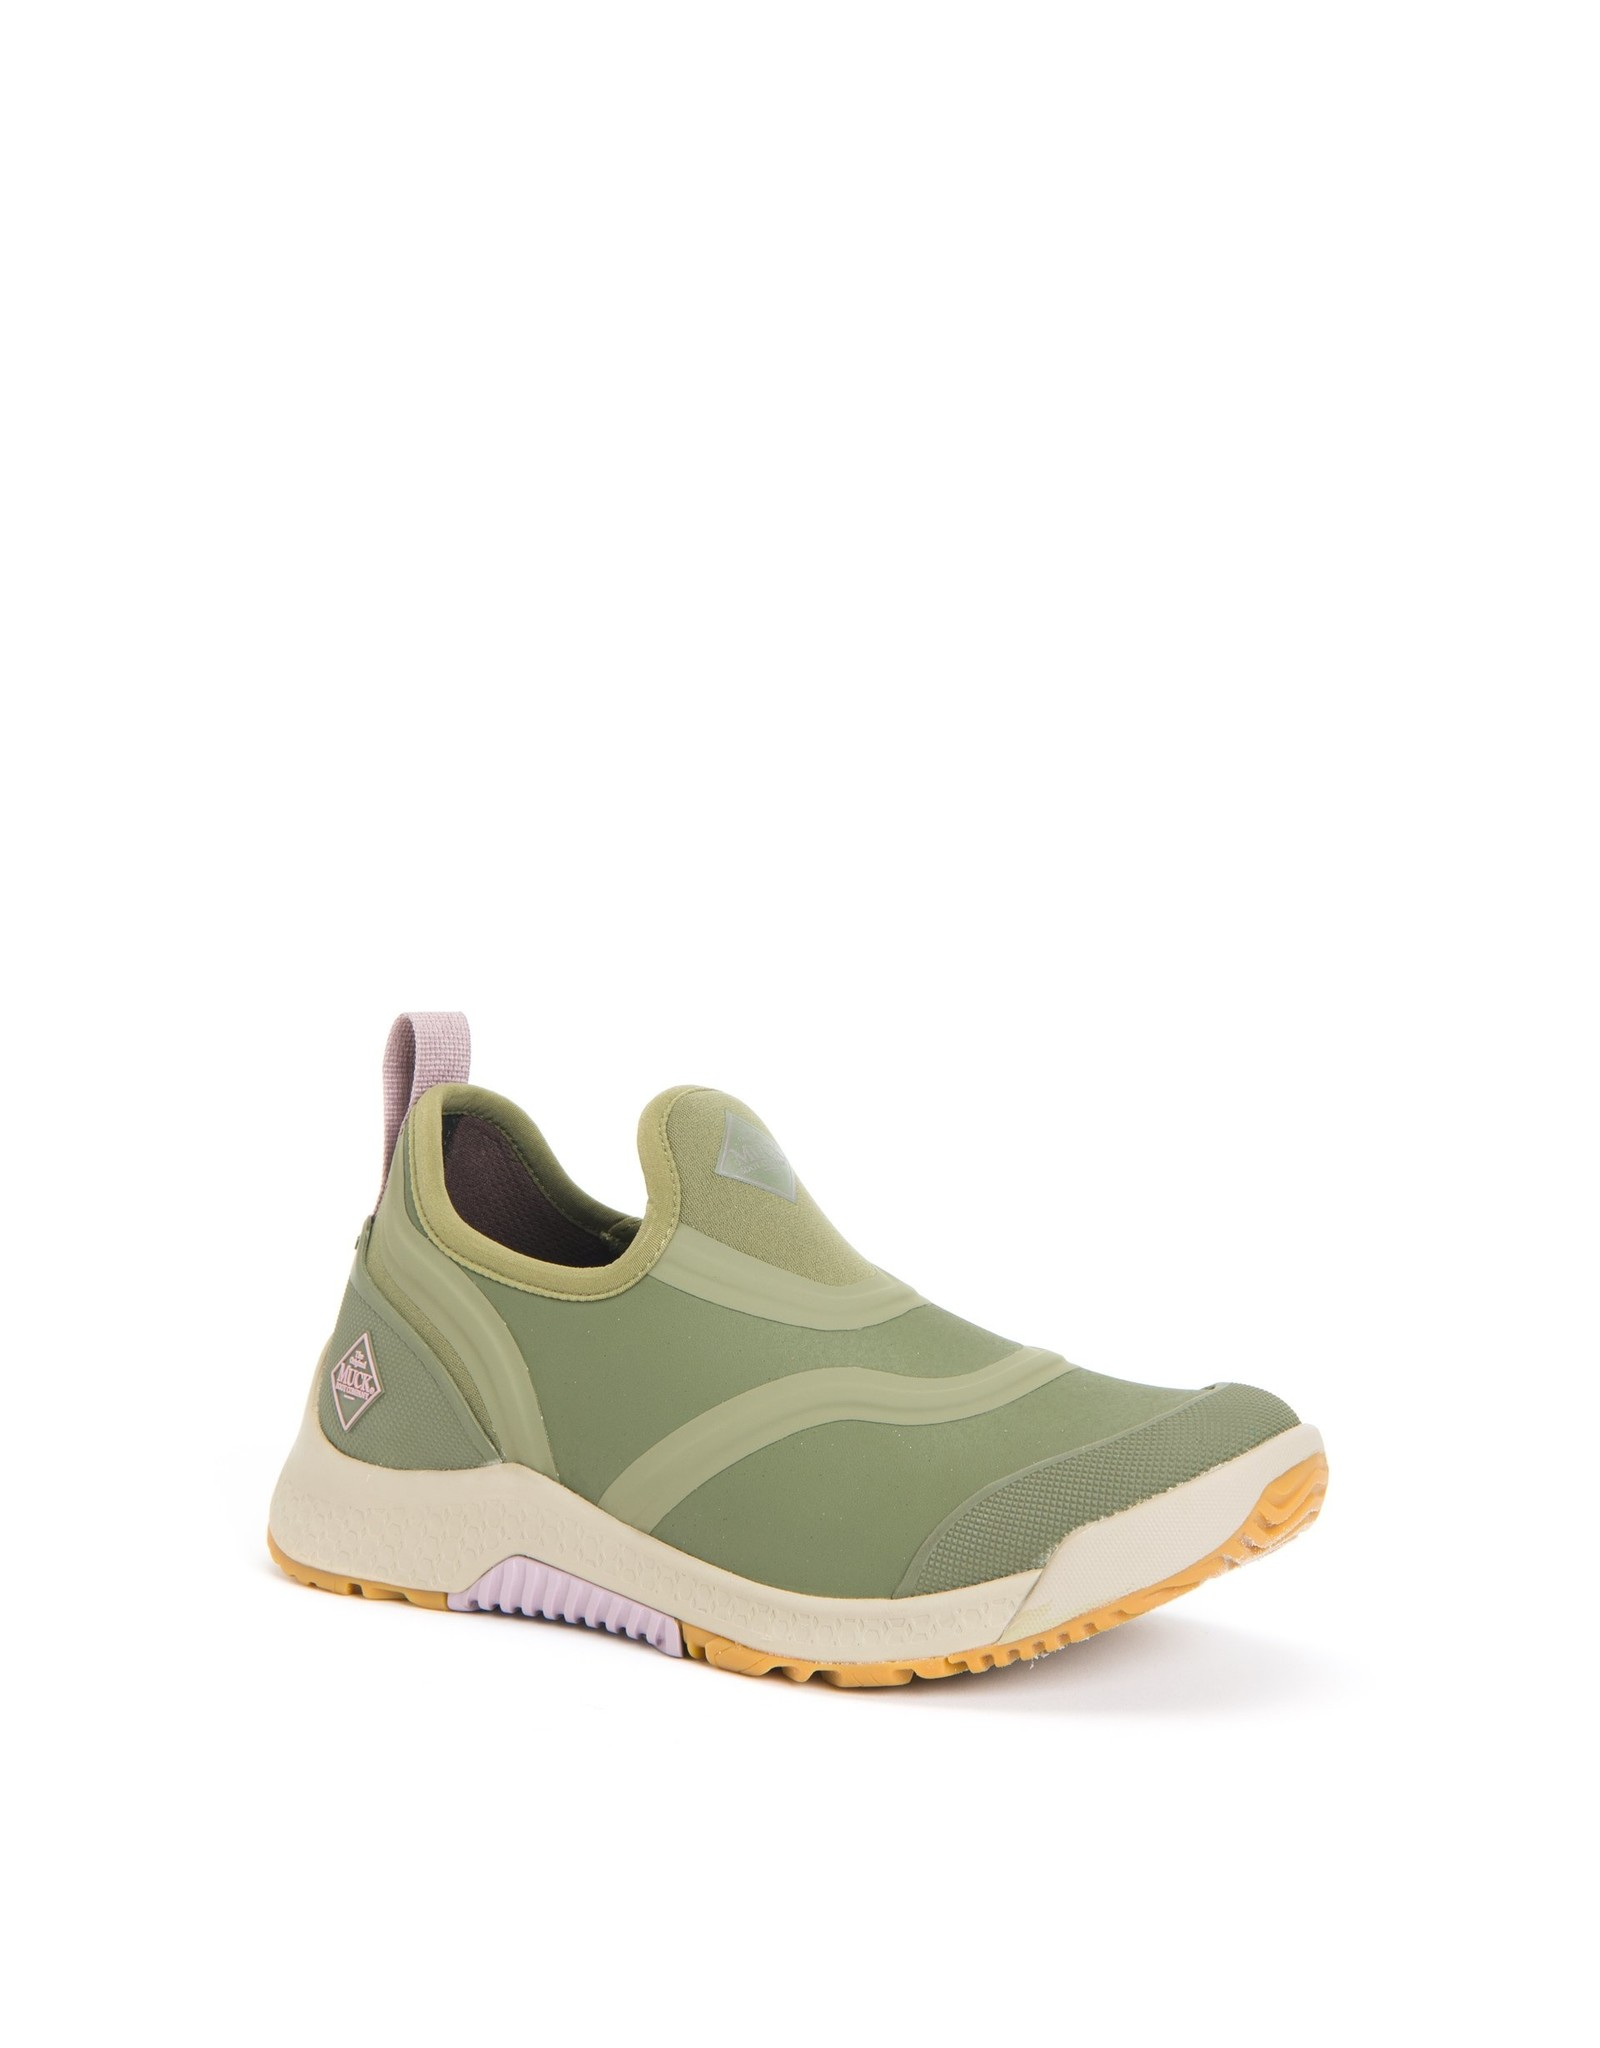 MUCK BOOT COMPANY WOMEN'S OUTSCAPE LOW